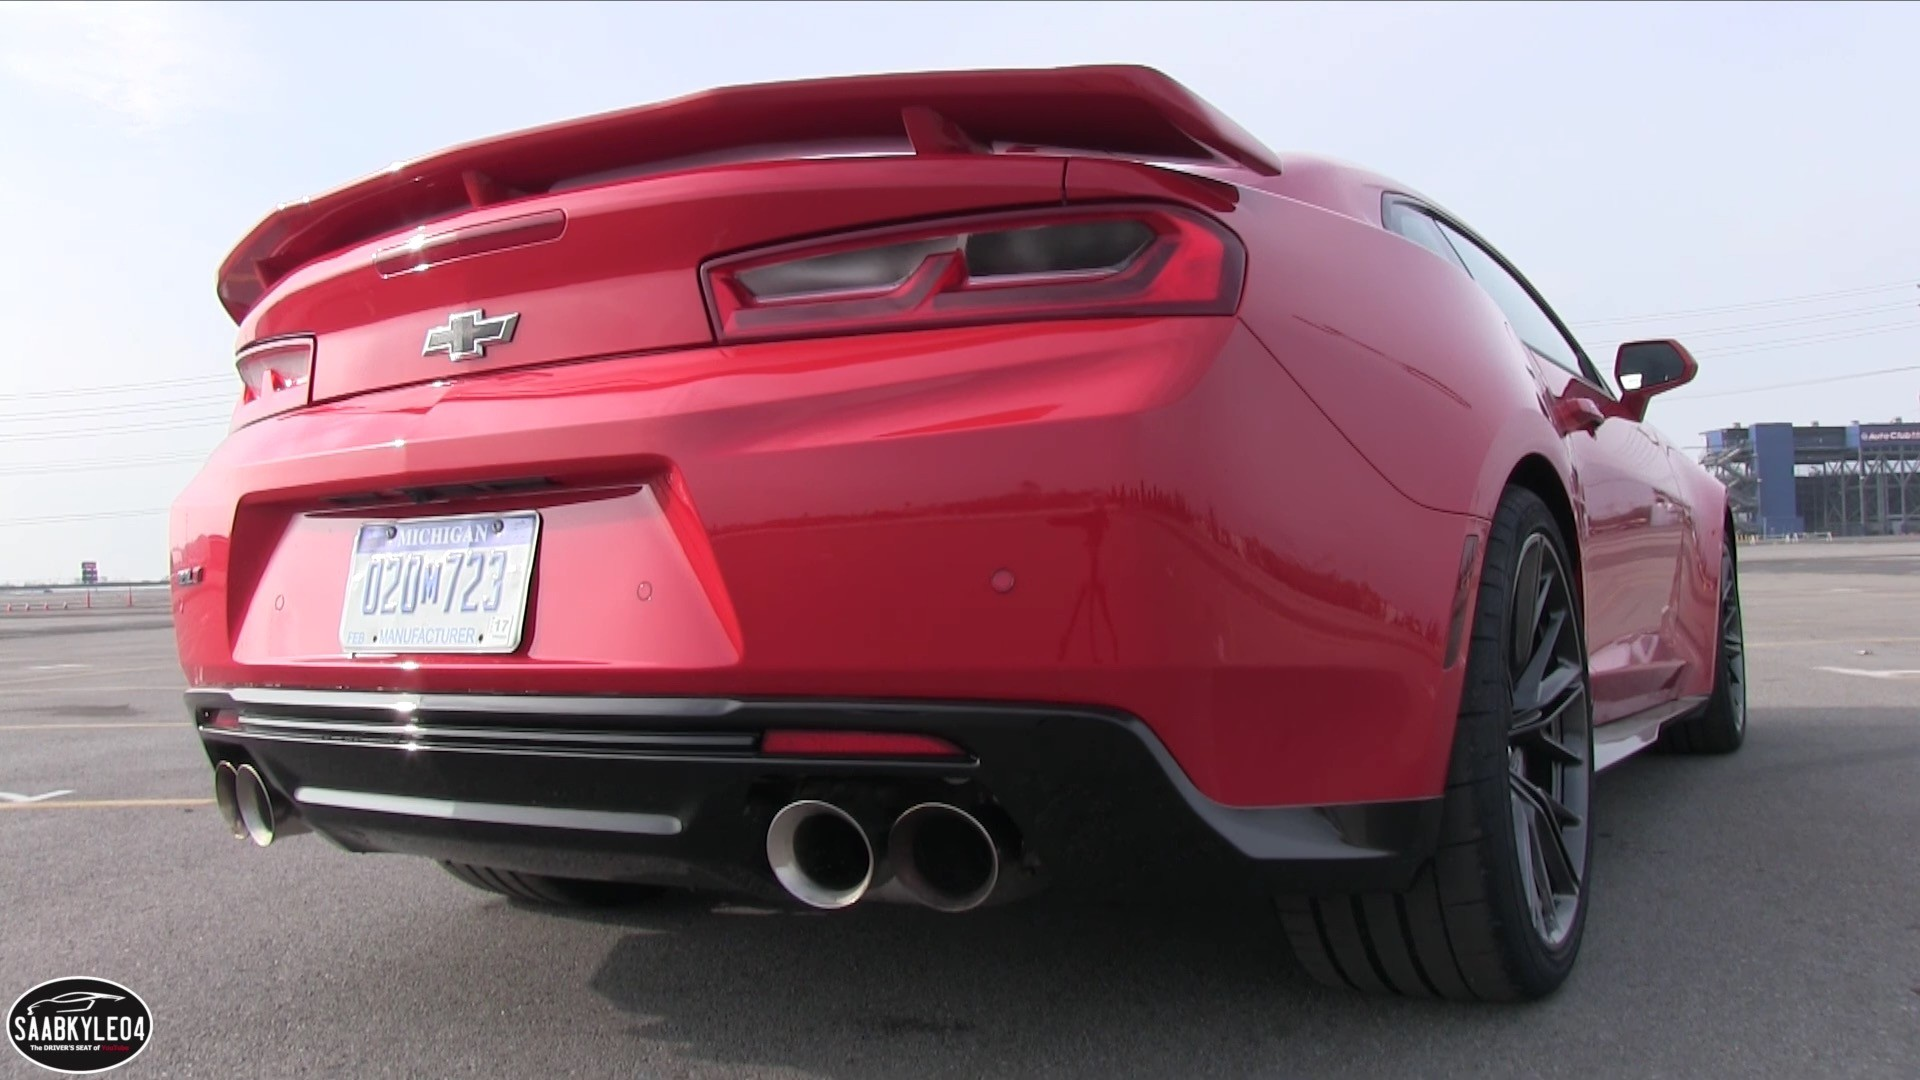 2017 Chevrolet Camaro ZL1 Dual-Mode Exhaust Demo: From